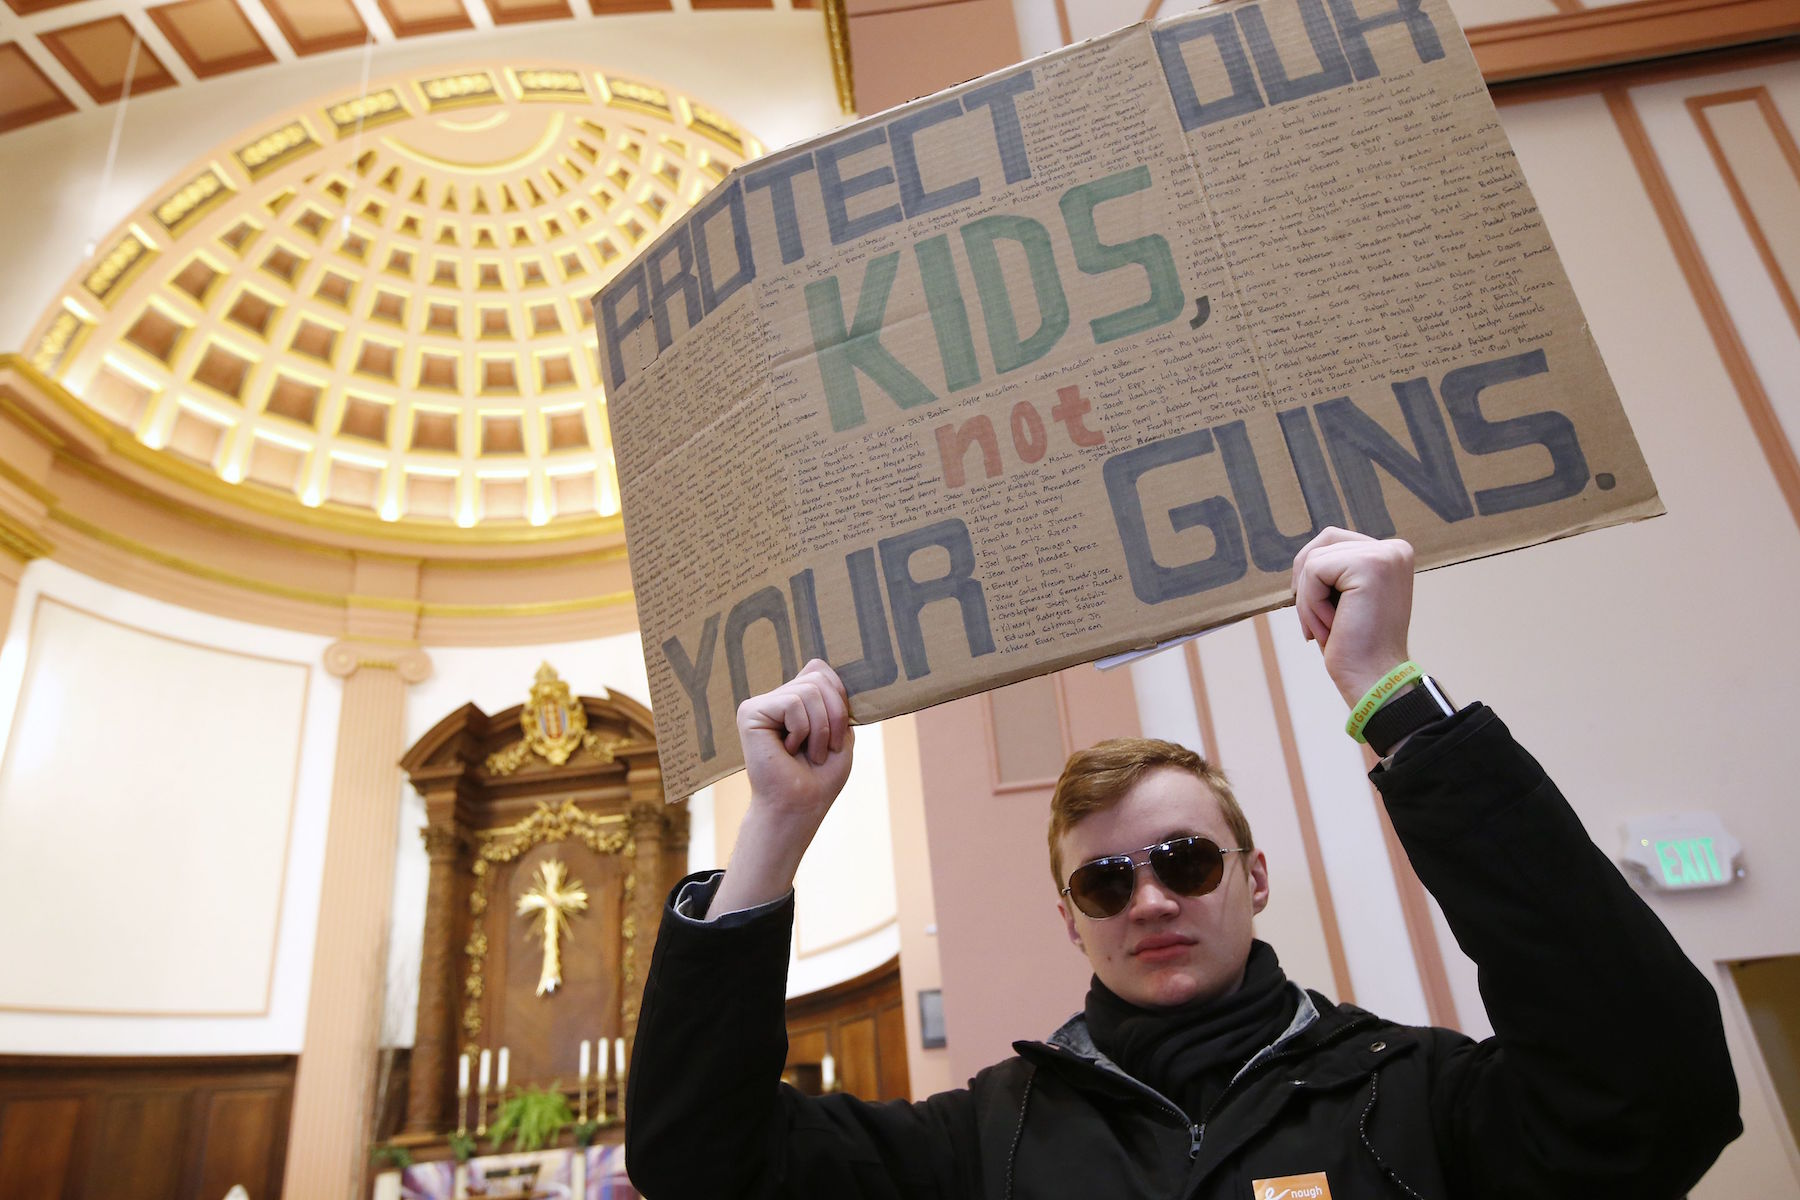 <div class='meta'><div class='origin-logo' data-origin='AP'></div><span class='caption-text' data-credit='AP Photo/Michael Dwyer'>Boston area high school students gather in St. Paul's Cathedral in Boston before a march to the Statehouse, Wednesday, March 14, 2018.</span></div>